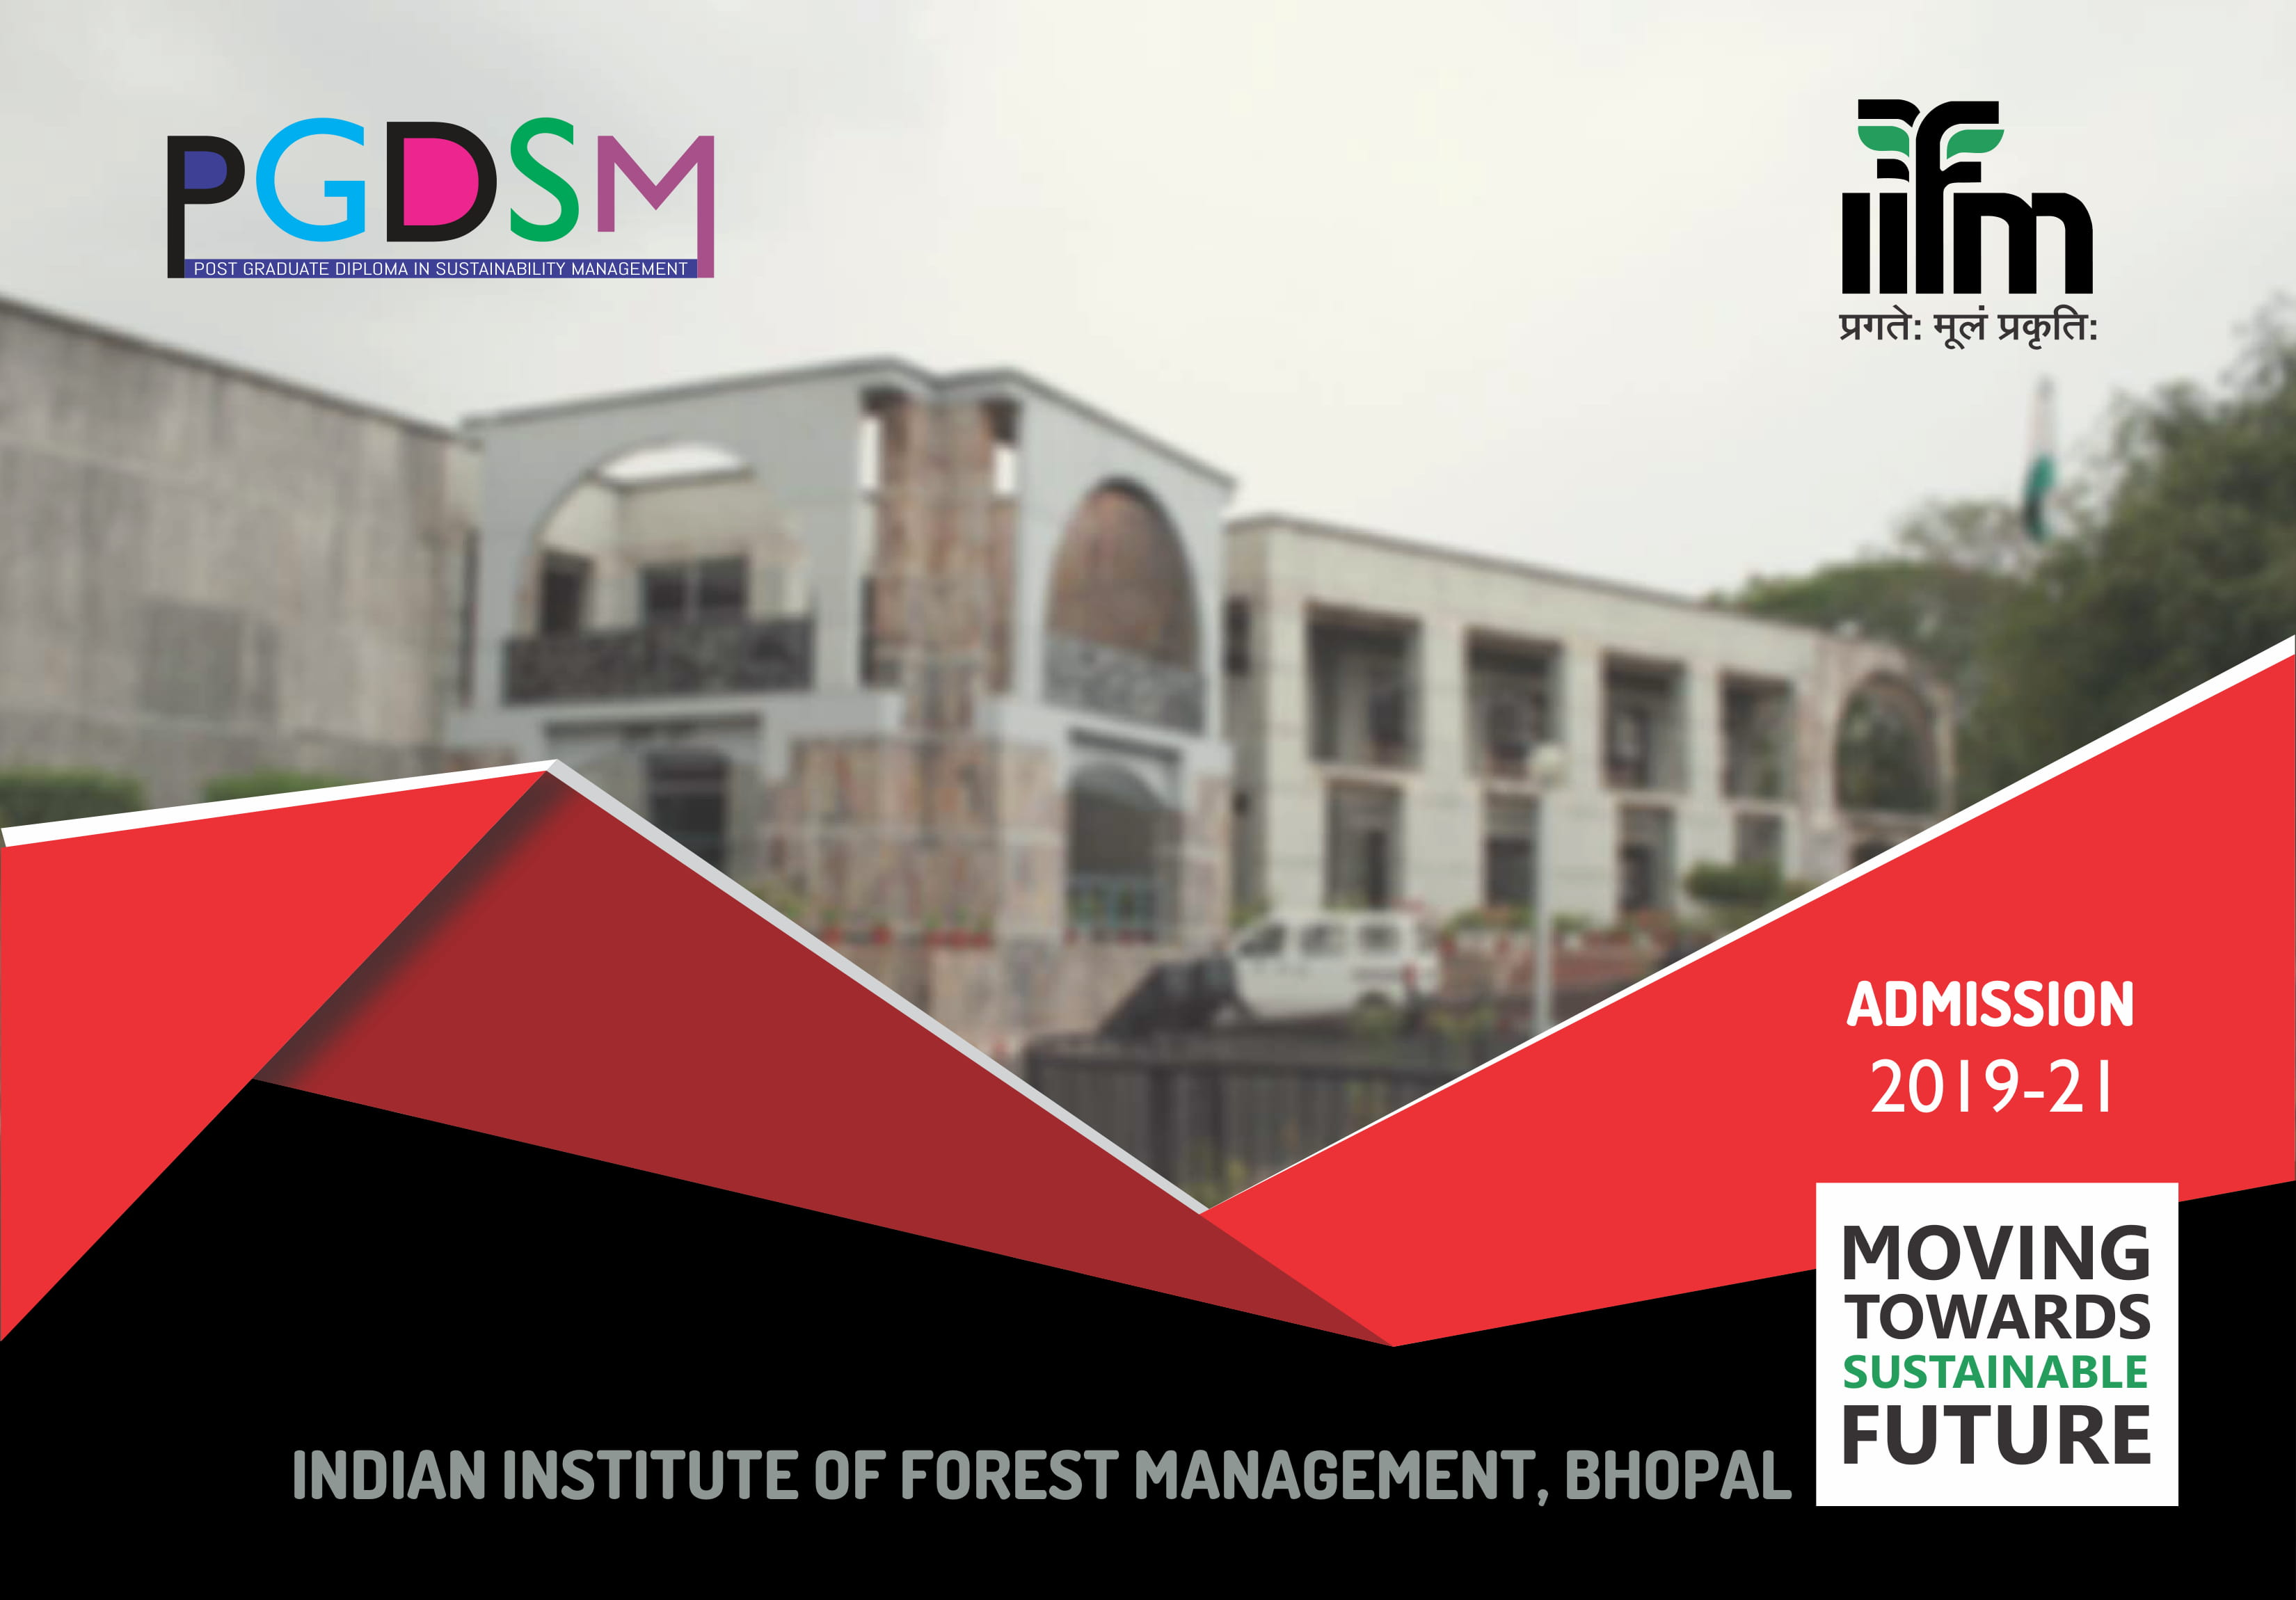 IIFM PGDSM Admission 2019-21 Application Form, Eligibility & Selection Criteria, Fees Structure, Syllabus